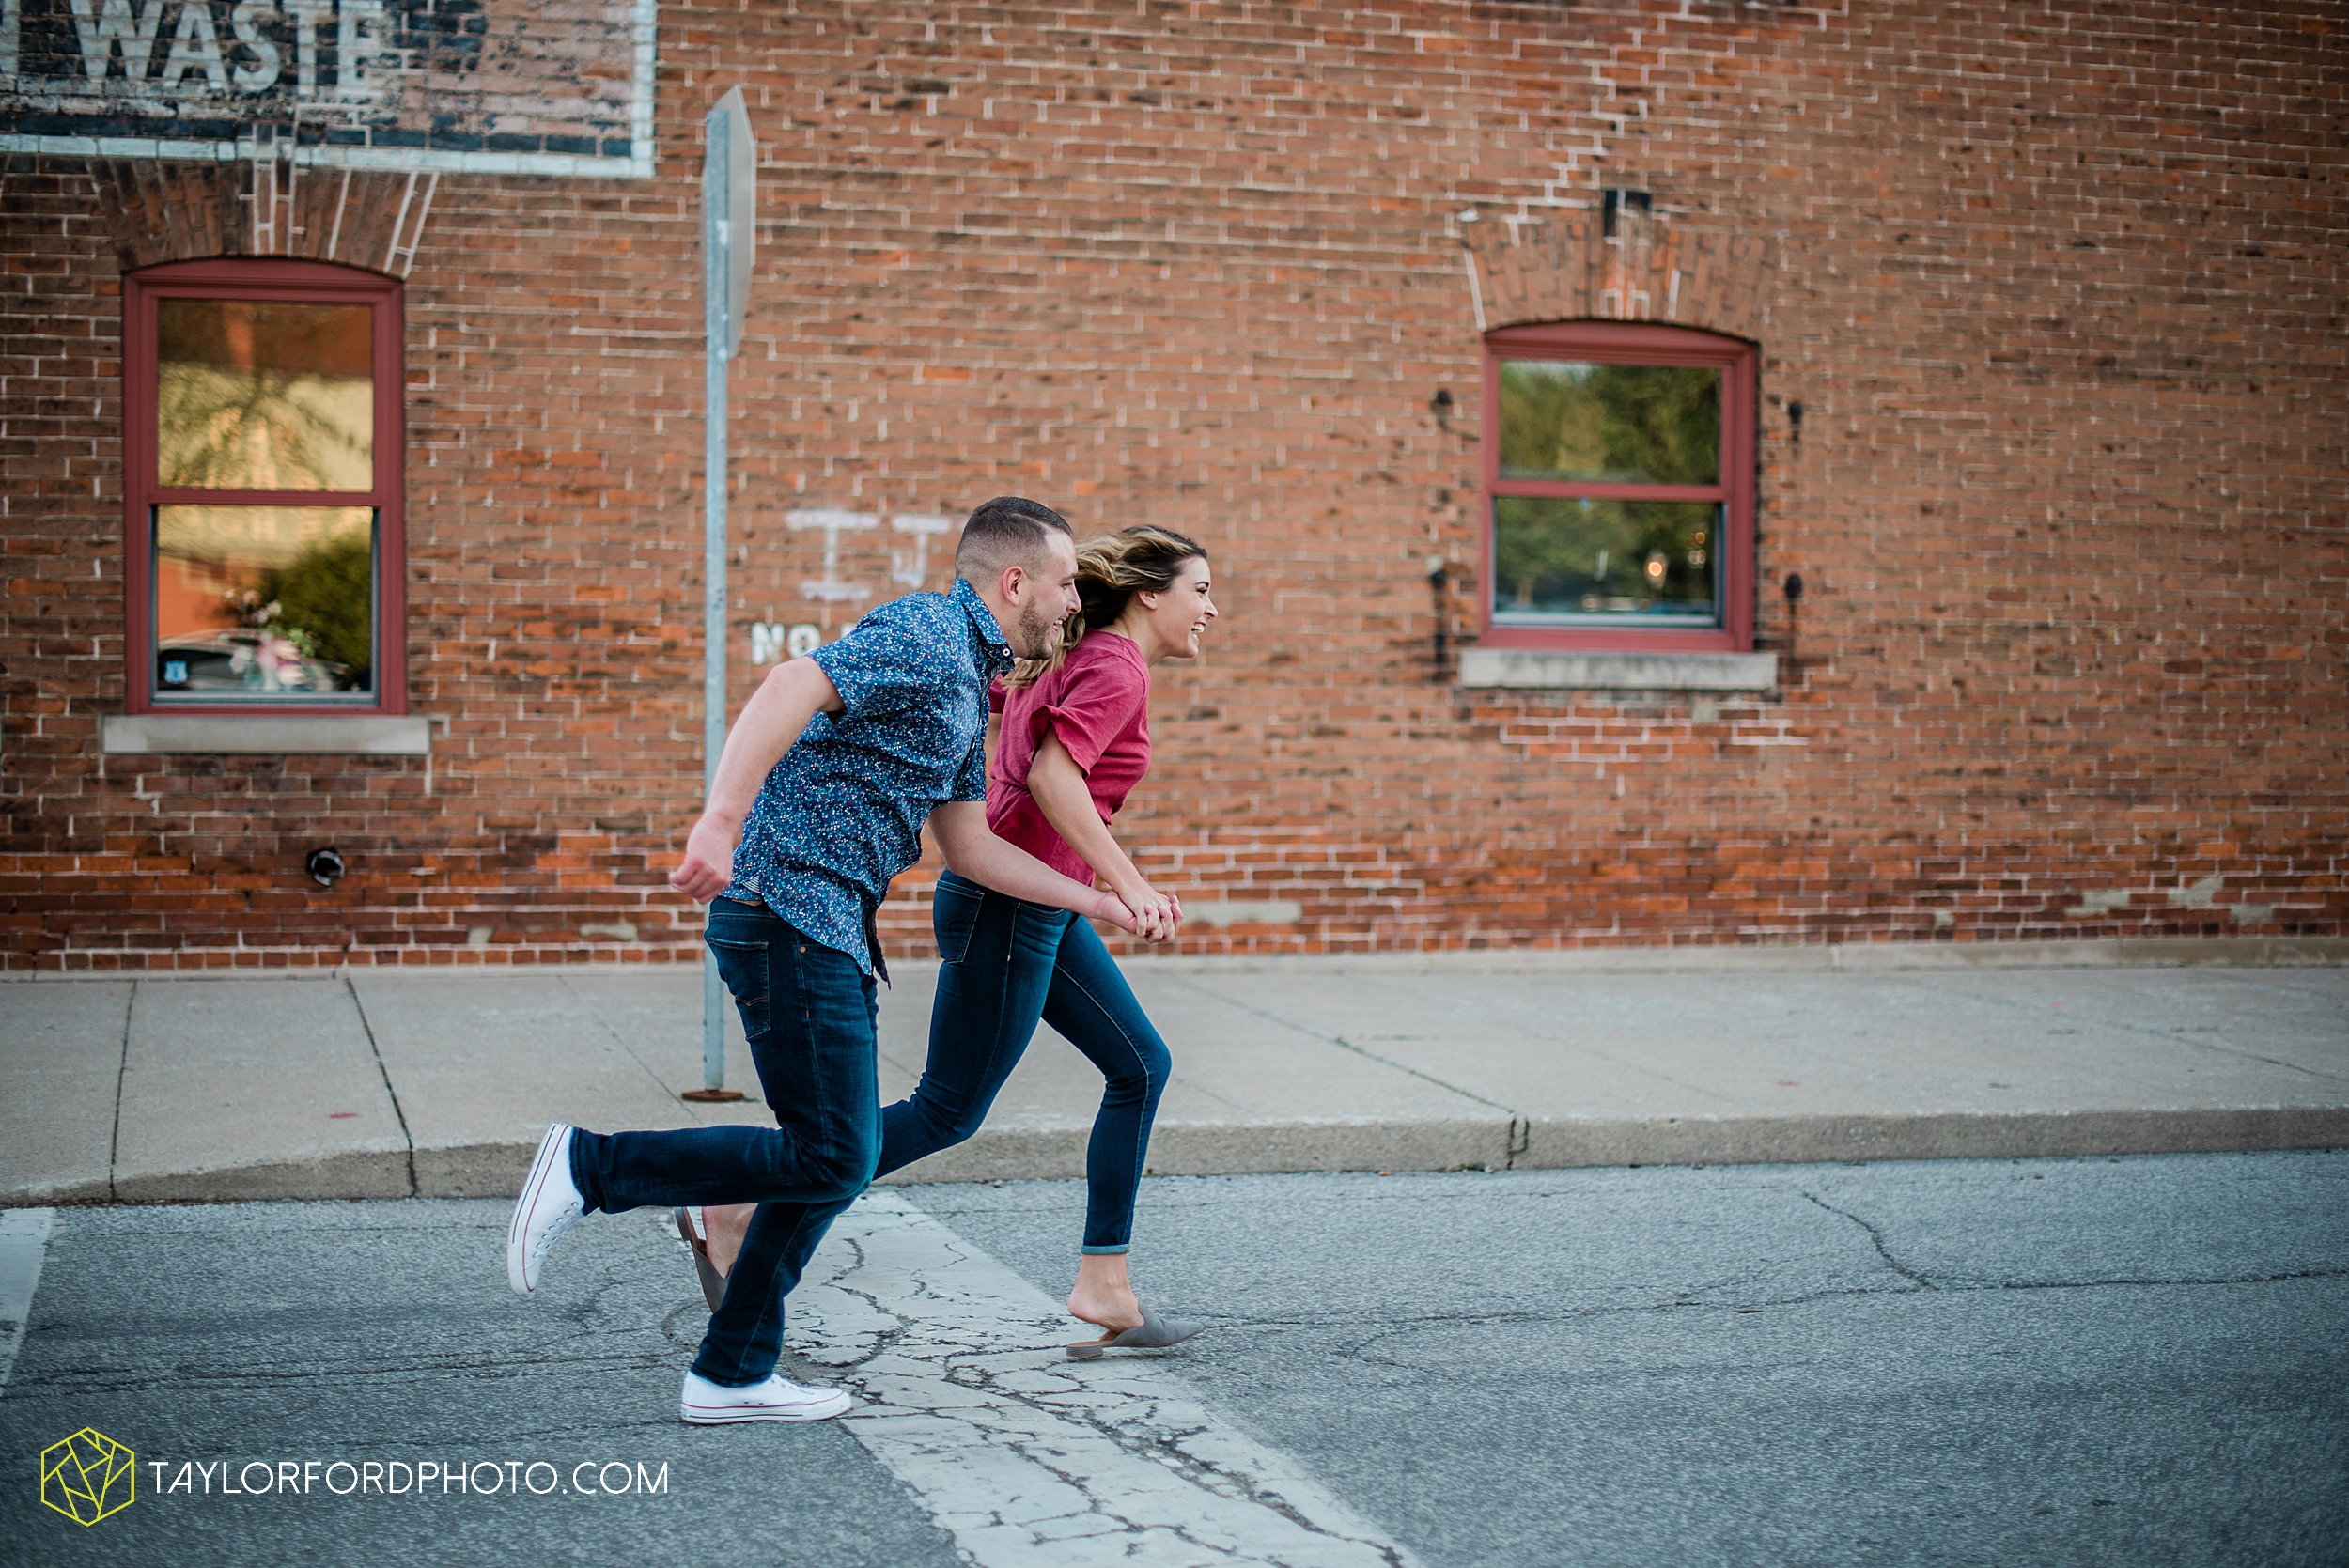 aly-taylor-downtown-fort-wayne-indiana-spring-engagement-photographer-photography-taylor-ford-hirschy-photographer_2594.jpg